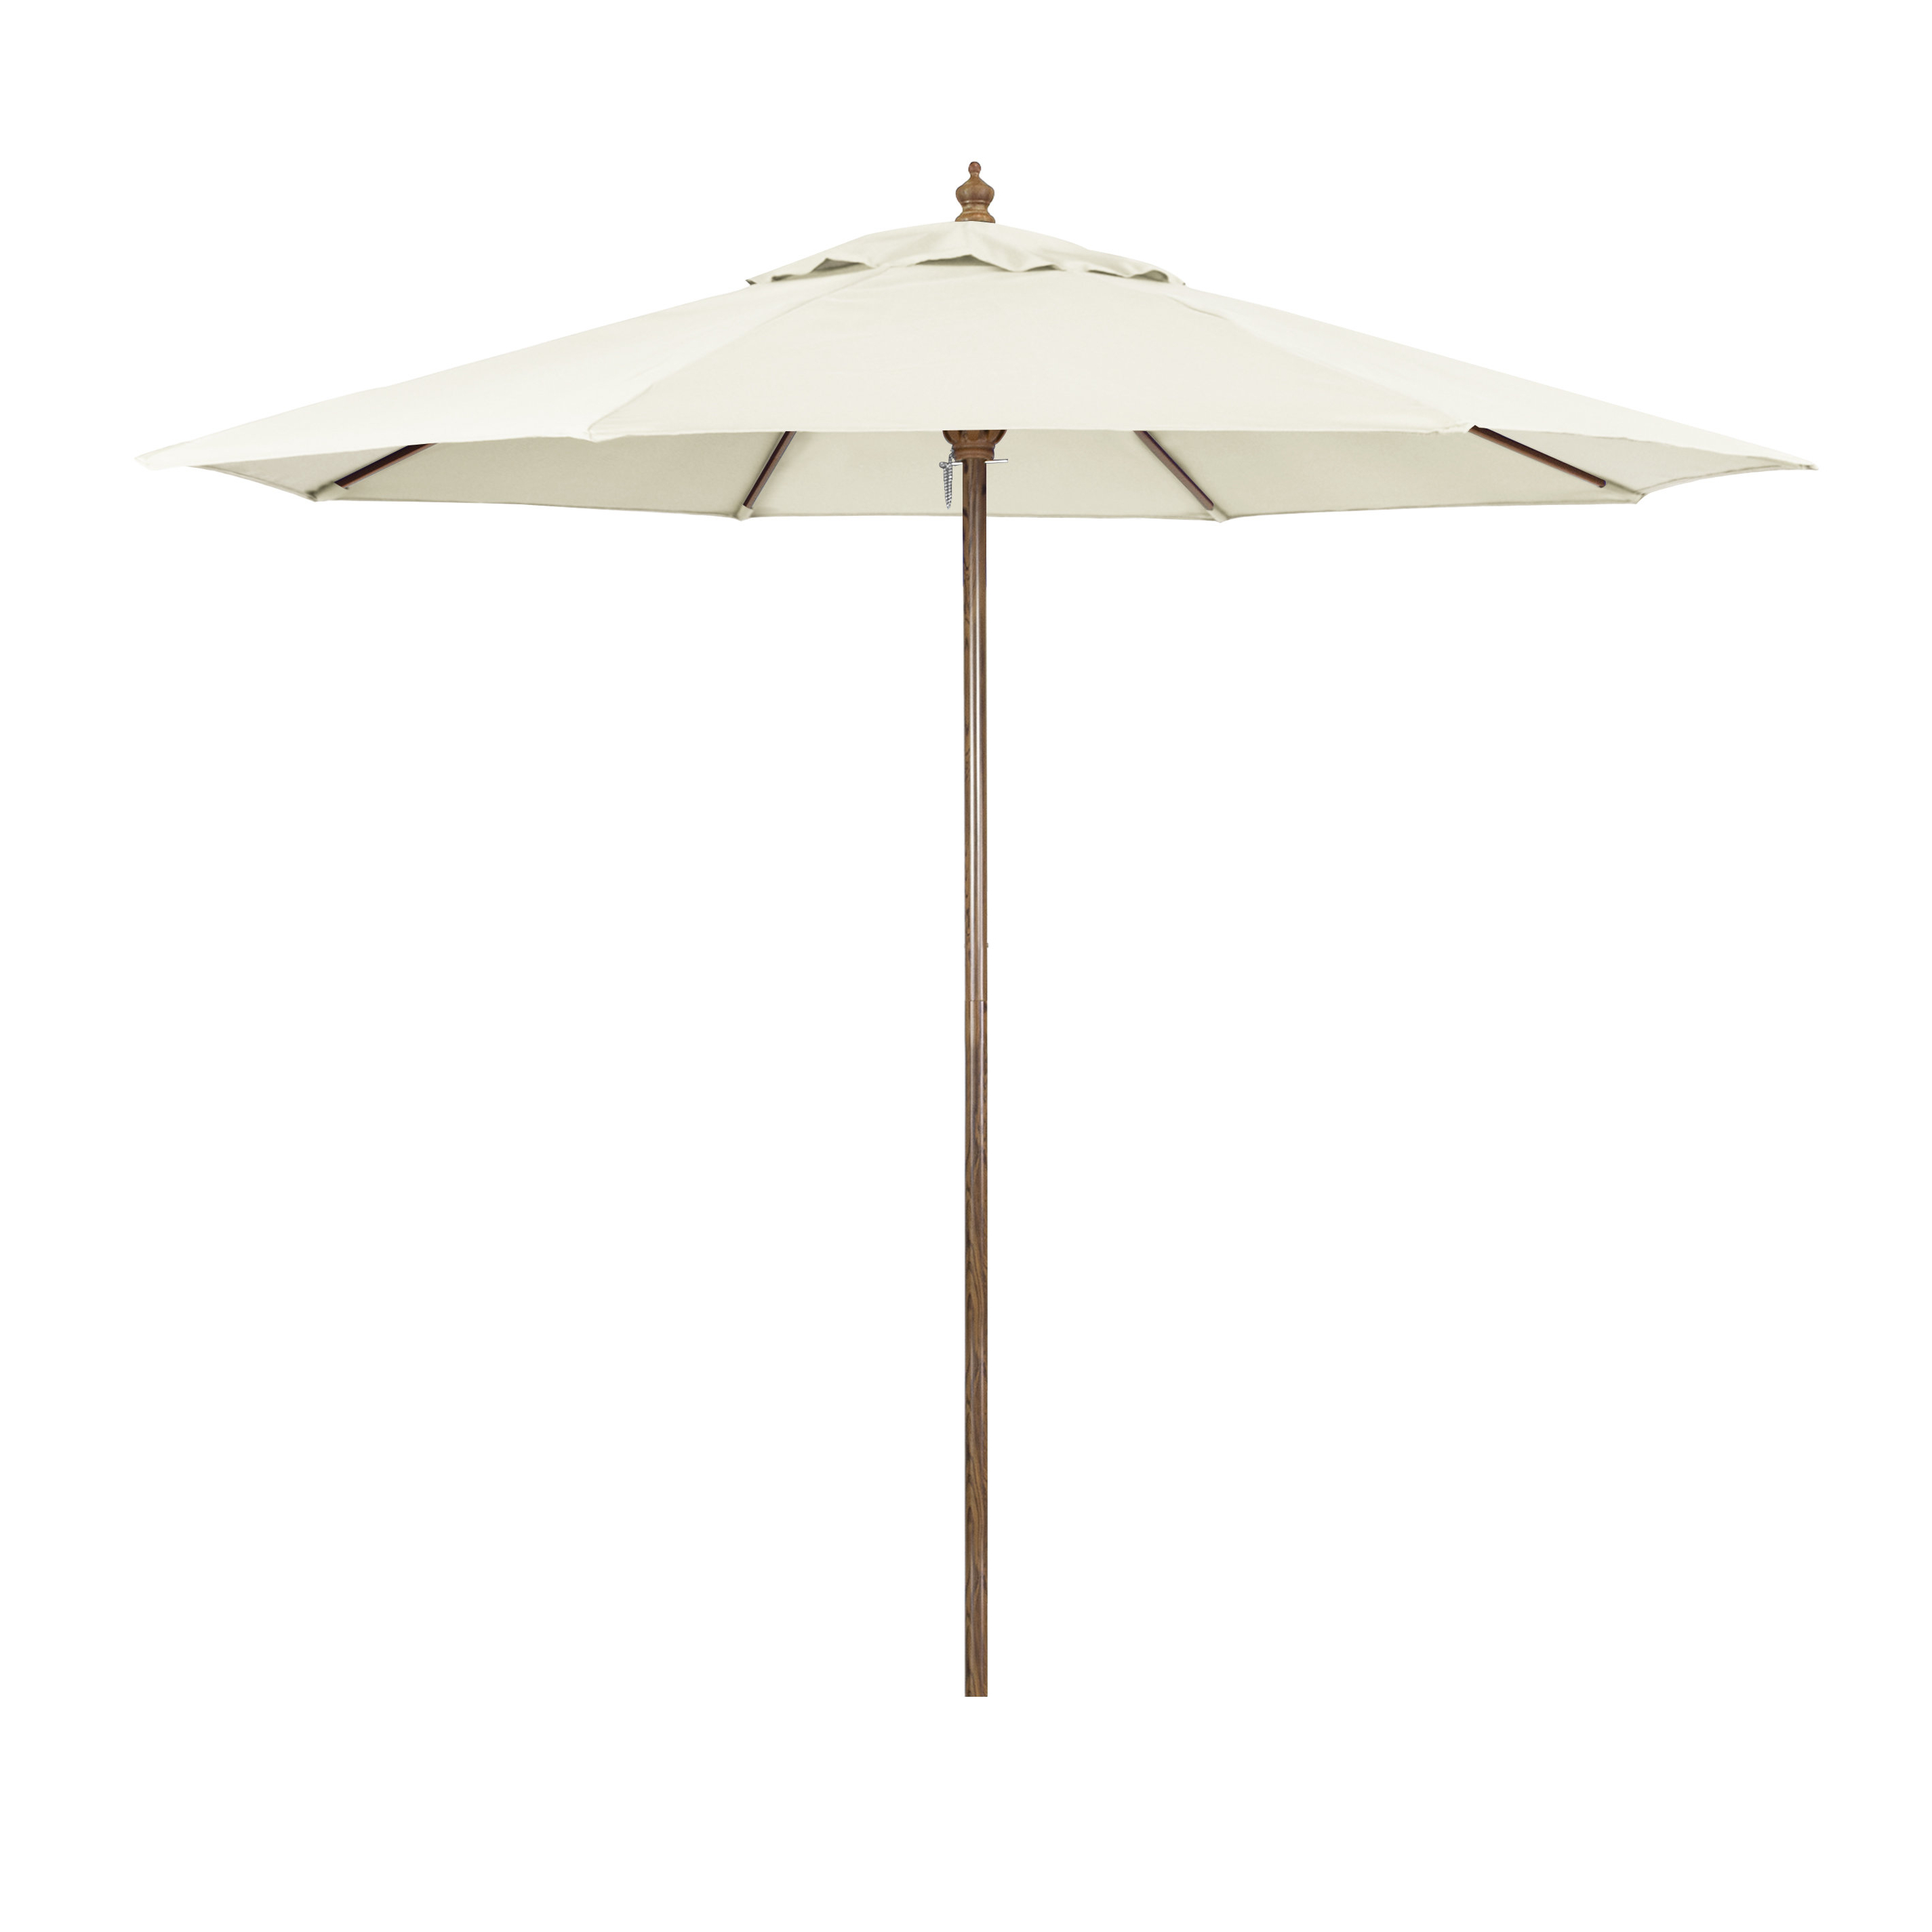 Ryant 9' Market Umbrella Throughout Well Known Ryant Cantilever Umbrellas (View 10 of 20)